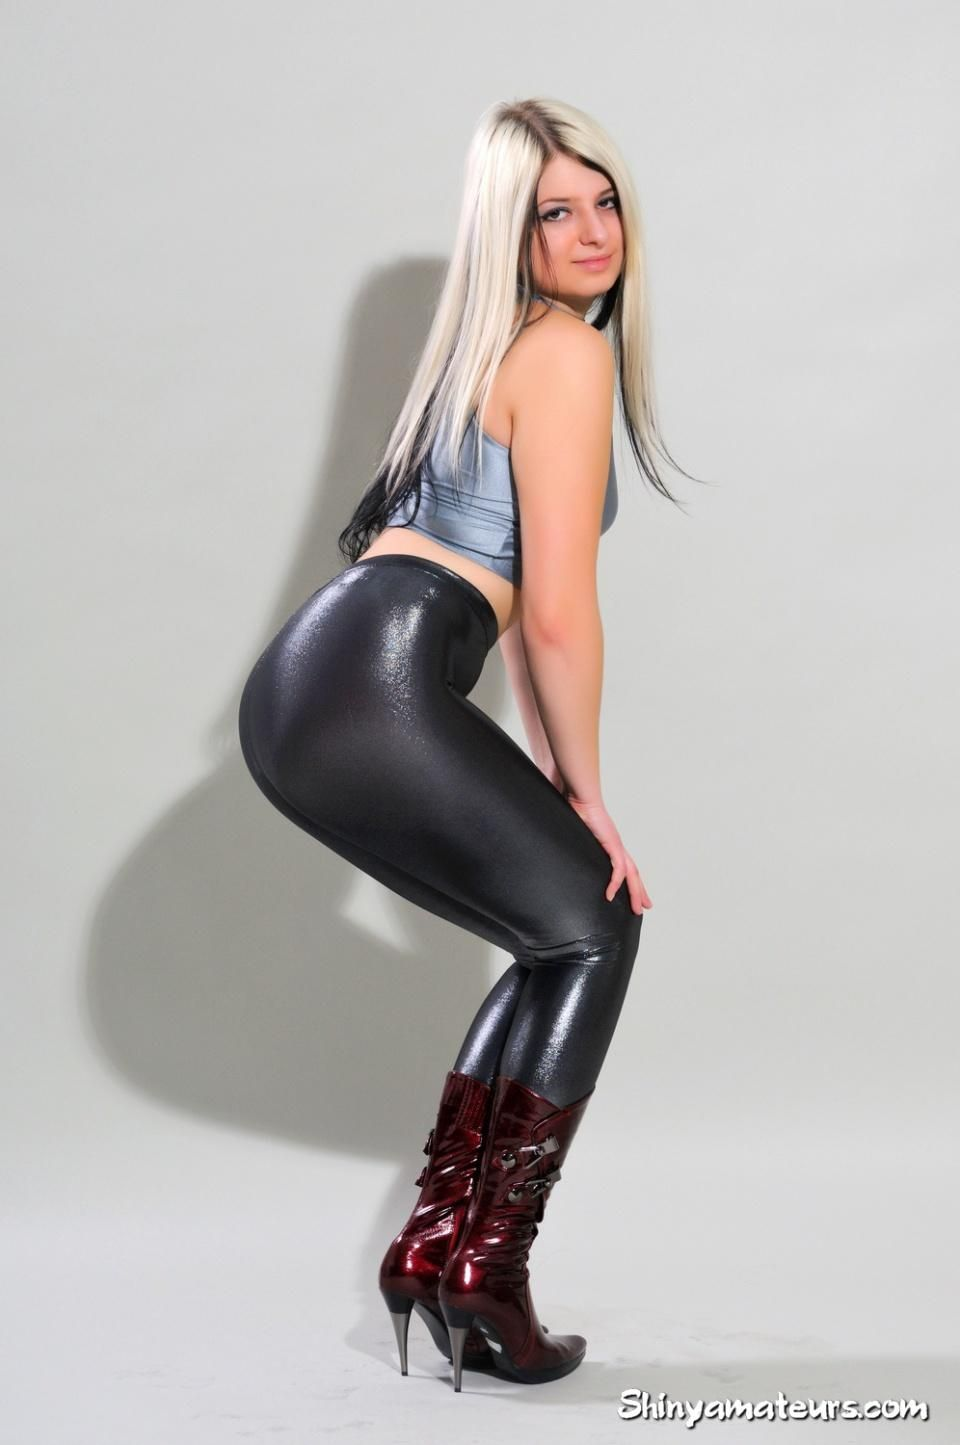 Xxx tight spandex leotard